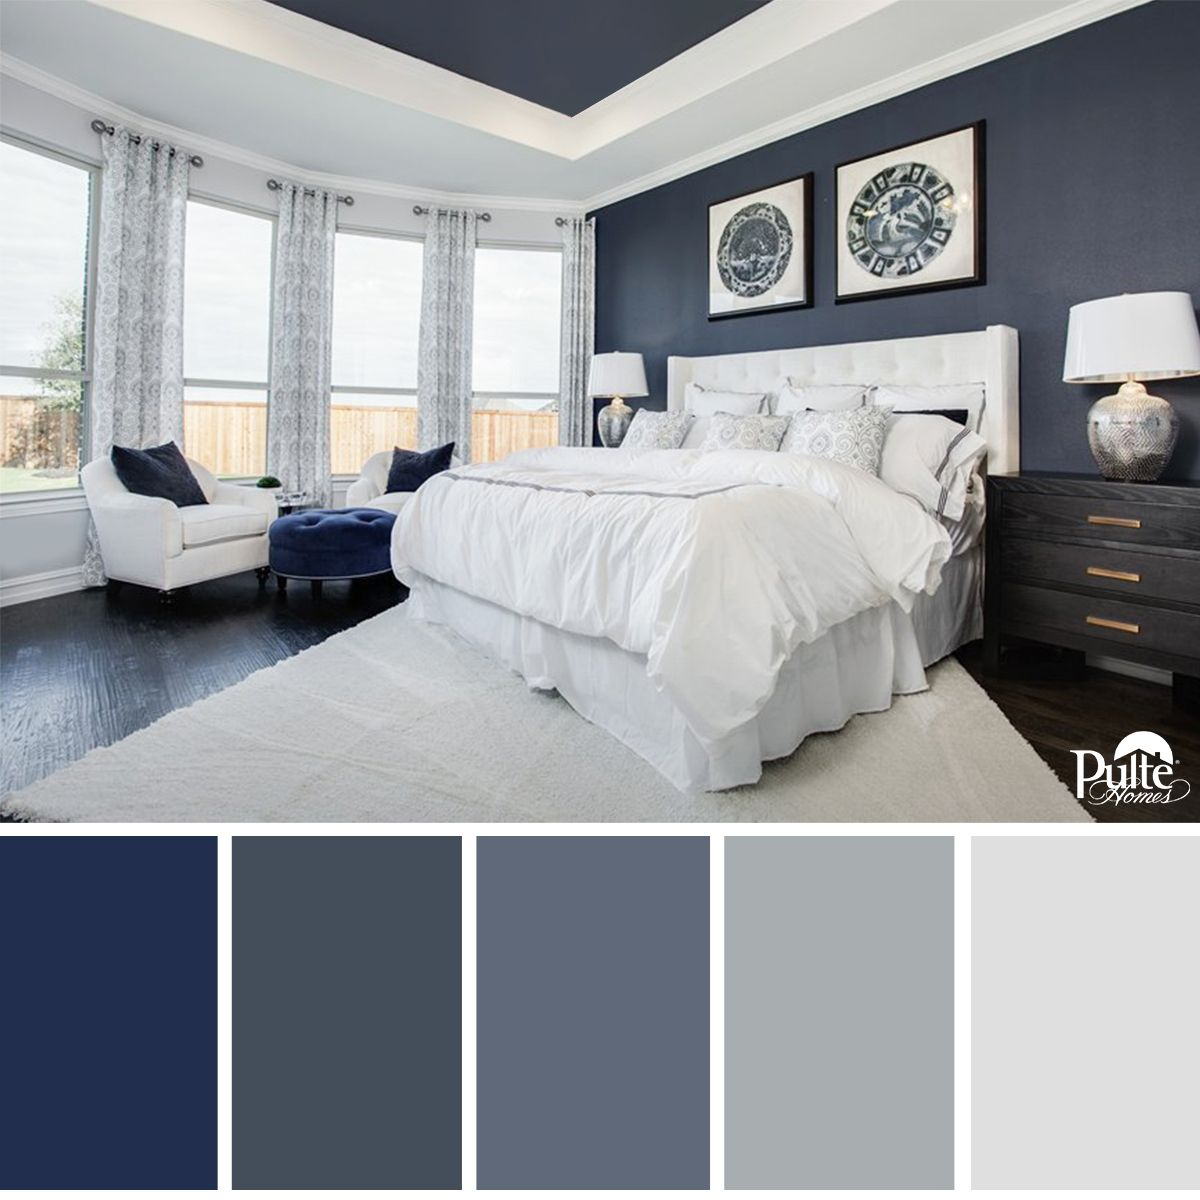 this bedroom design has the right idea the rich blue color palette and decor create - Color Bedroom Design